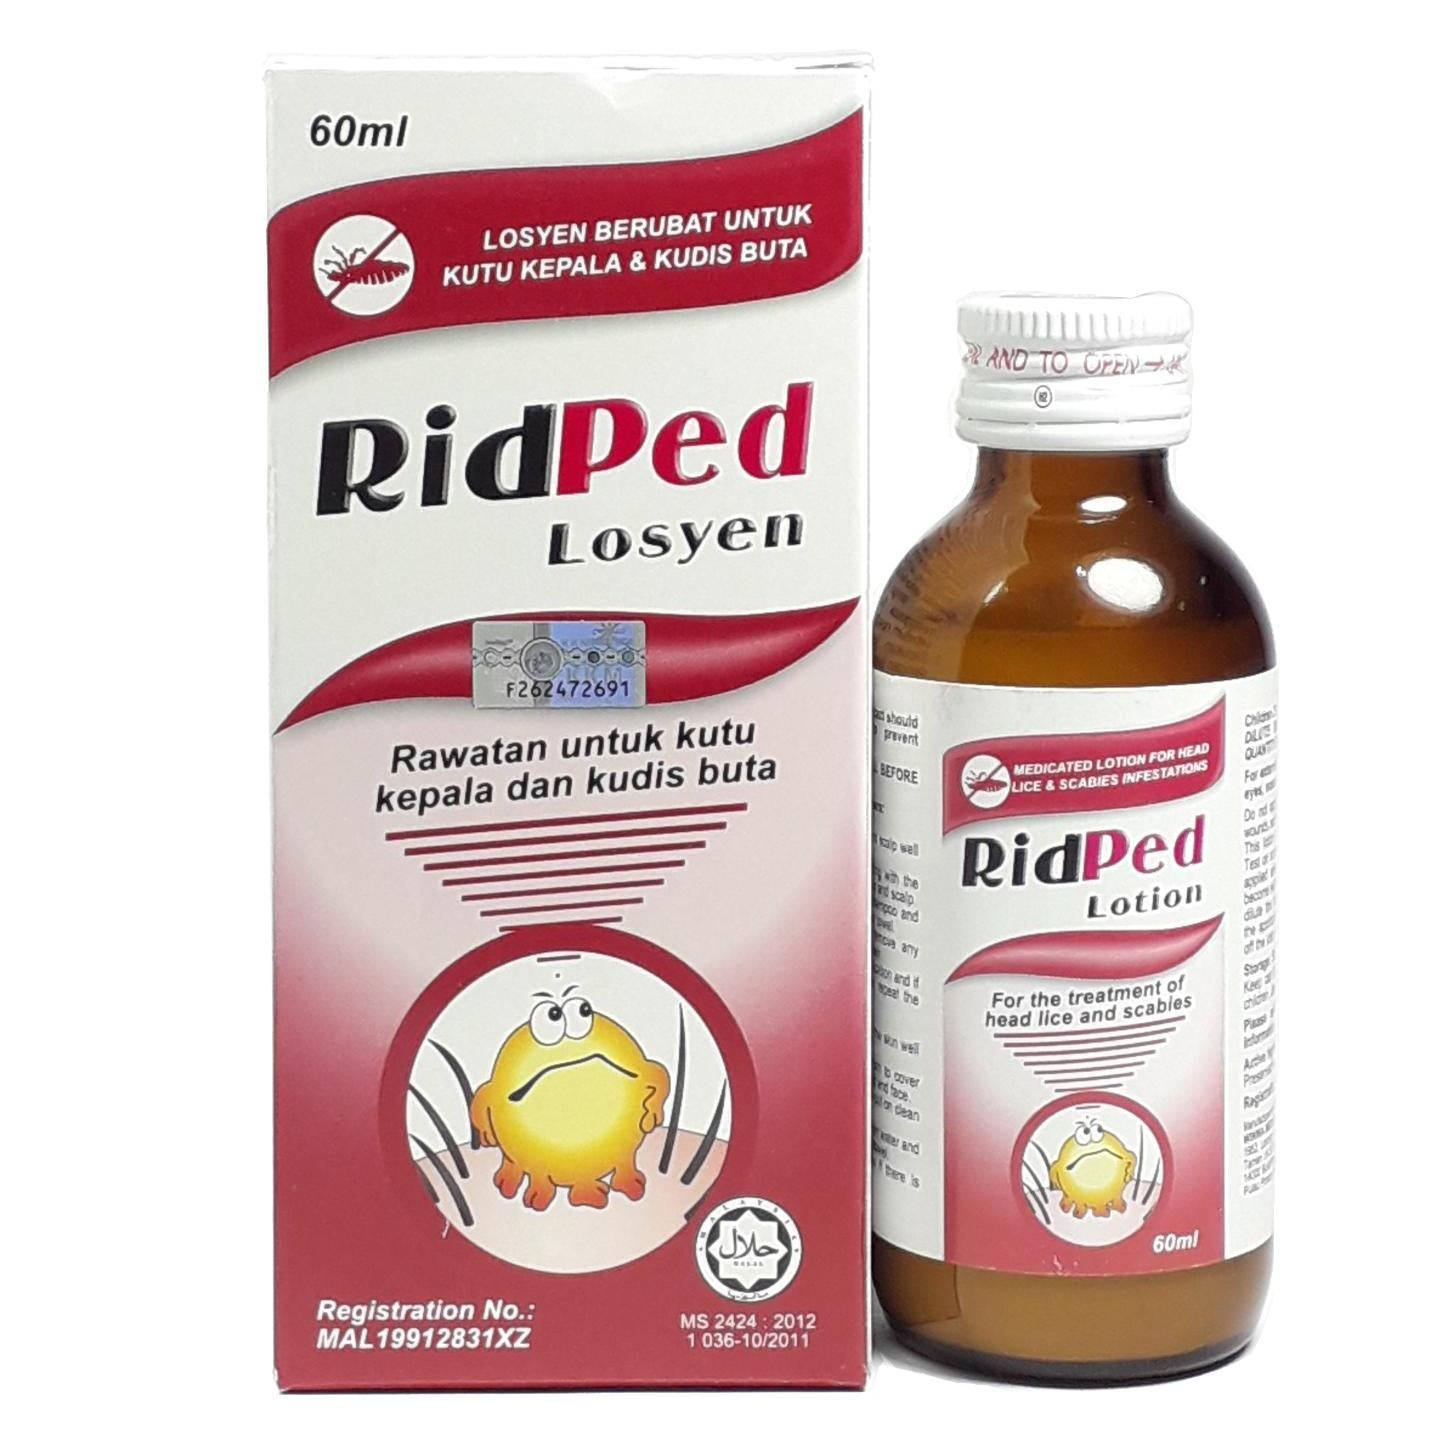 Ridped Lotion - DoctorOnCall